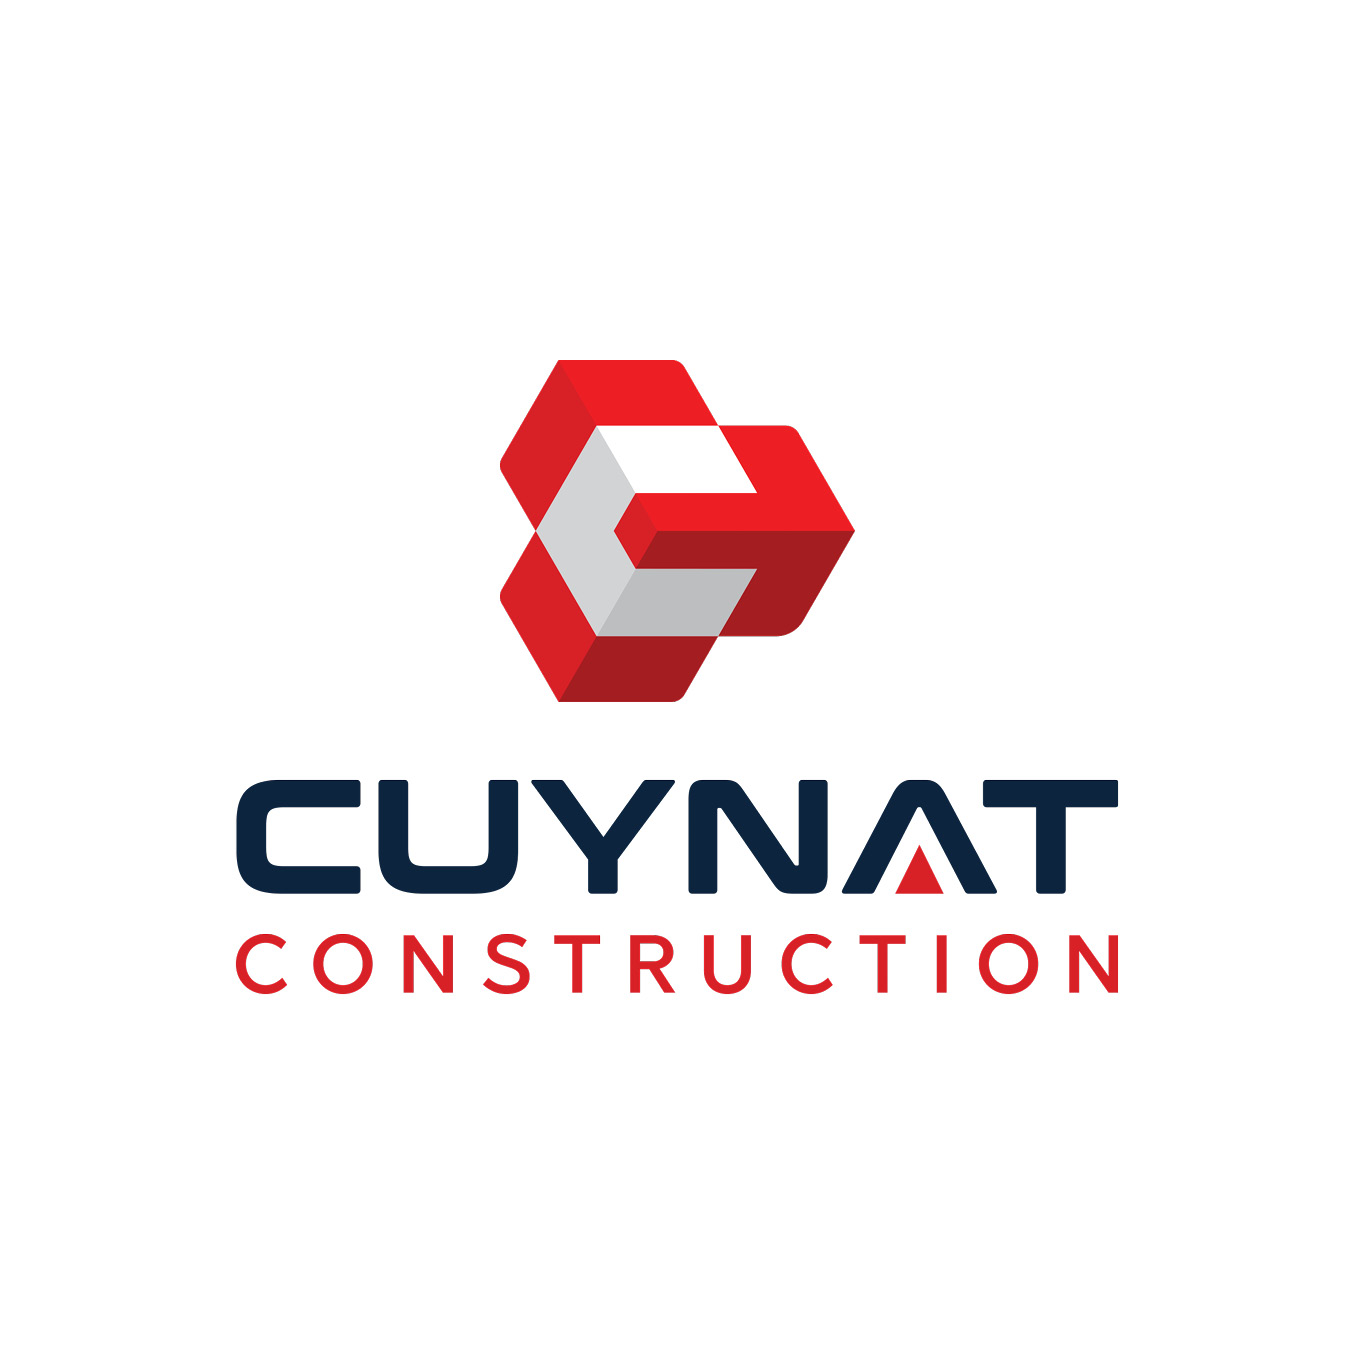 CUYNAT Construction